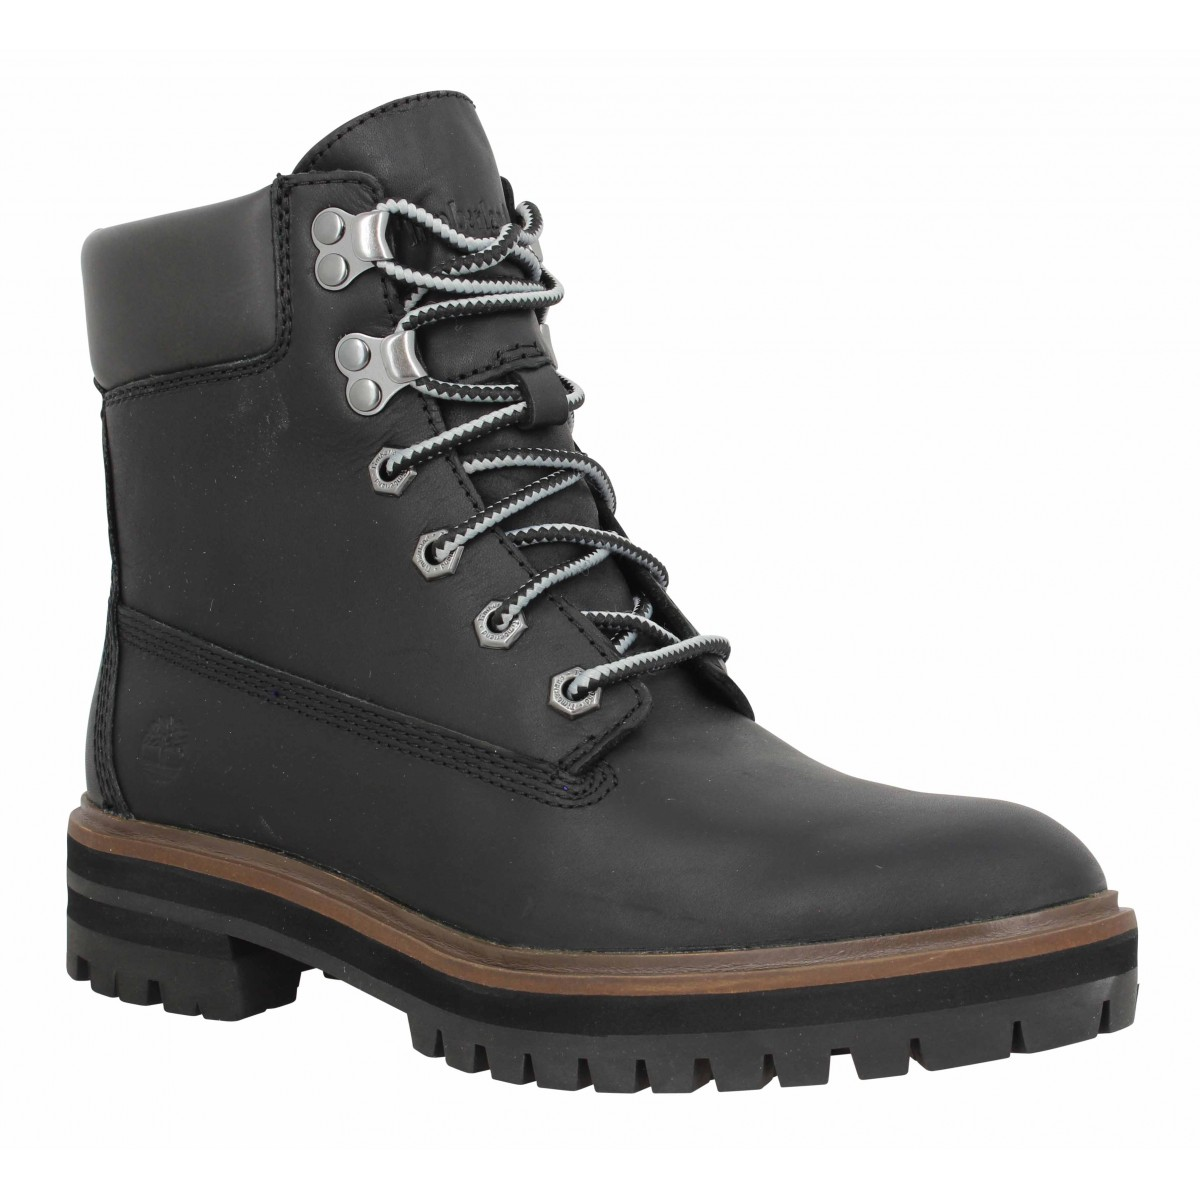 Bottines TIMBERLAND London Square 6in cuir Femme Noir